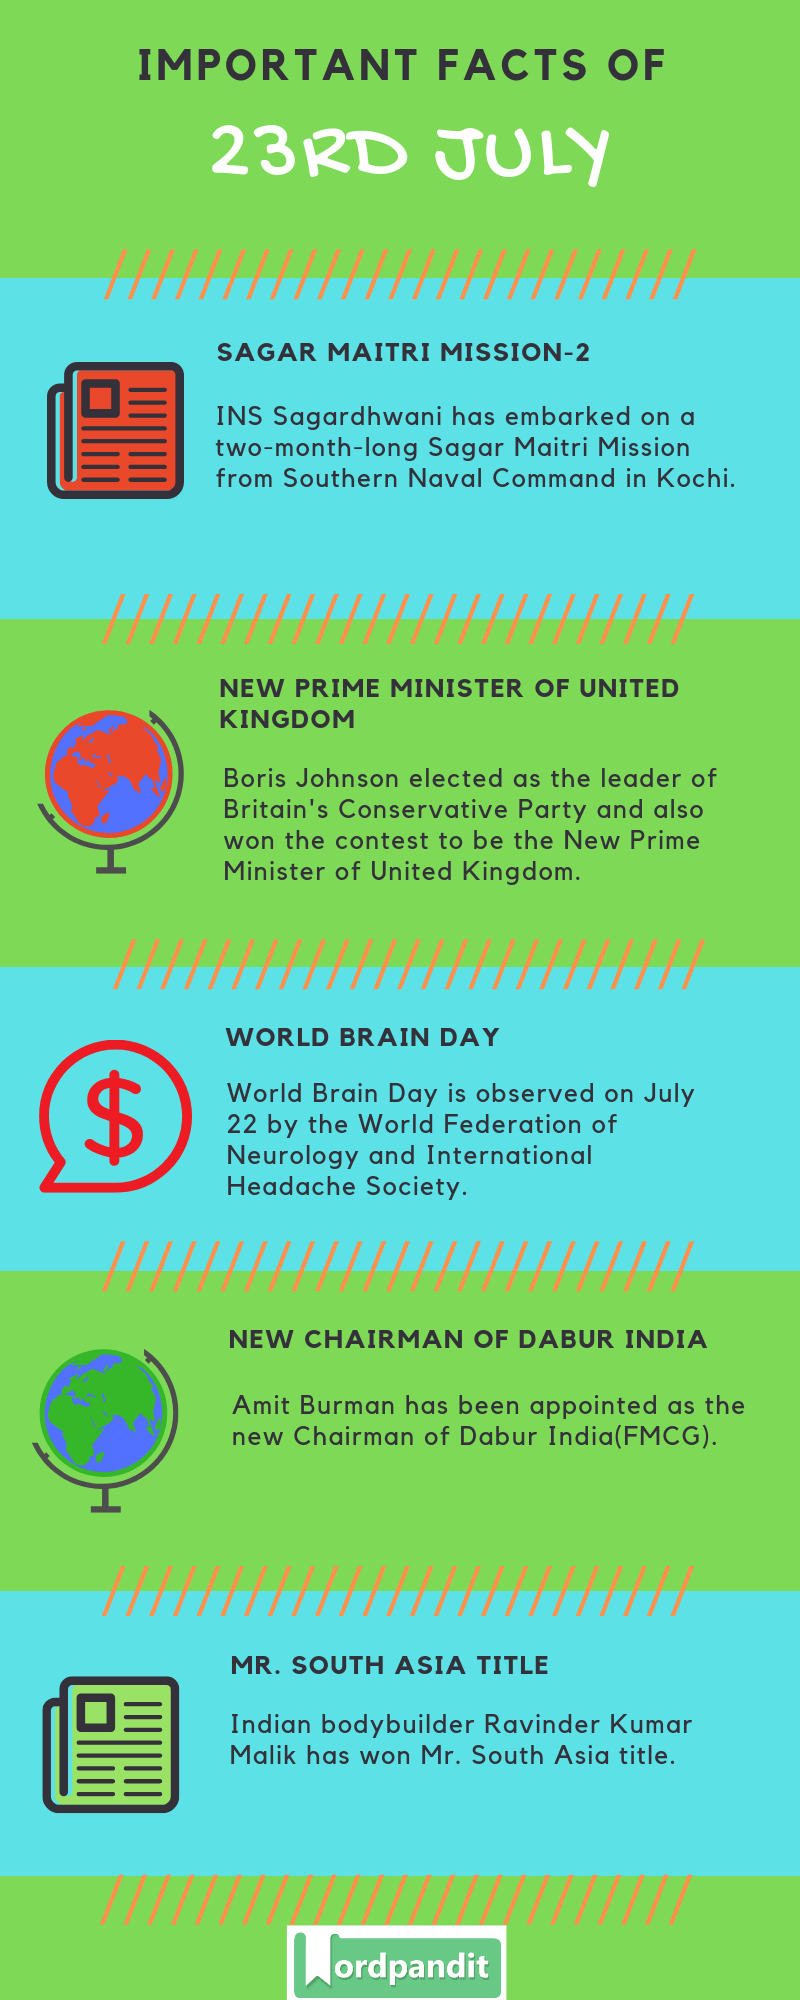 Daily Current Affairs 23 July 2019 Current Affairs Quiz 23 July 2019 Current Affairs Infographic